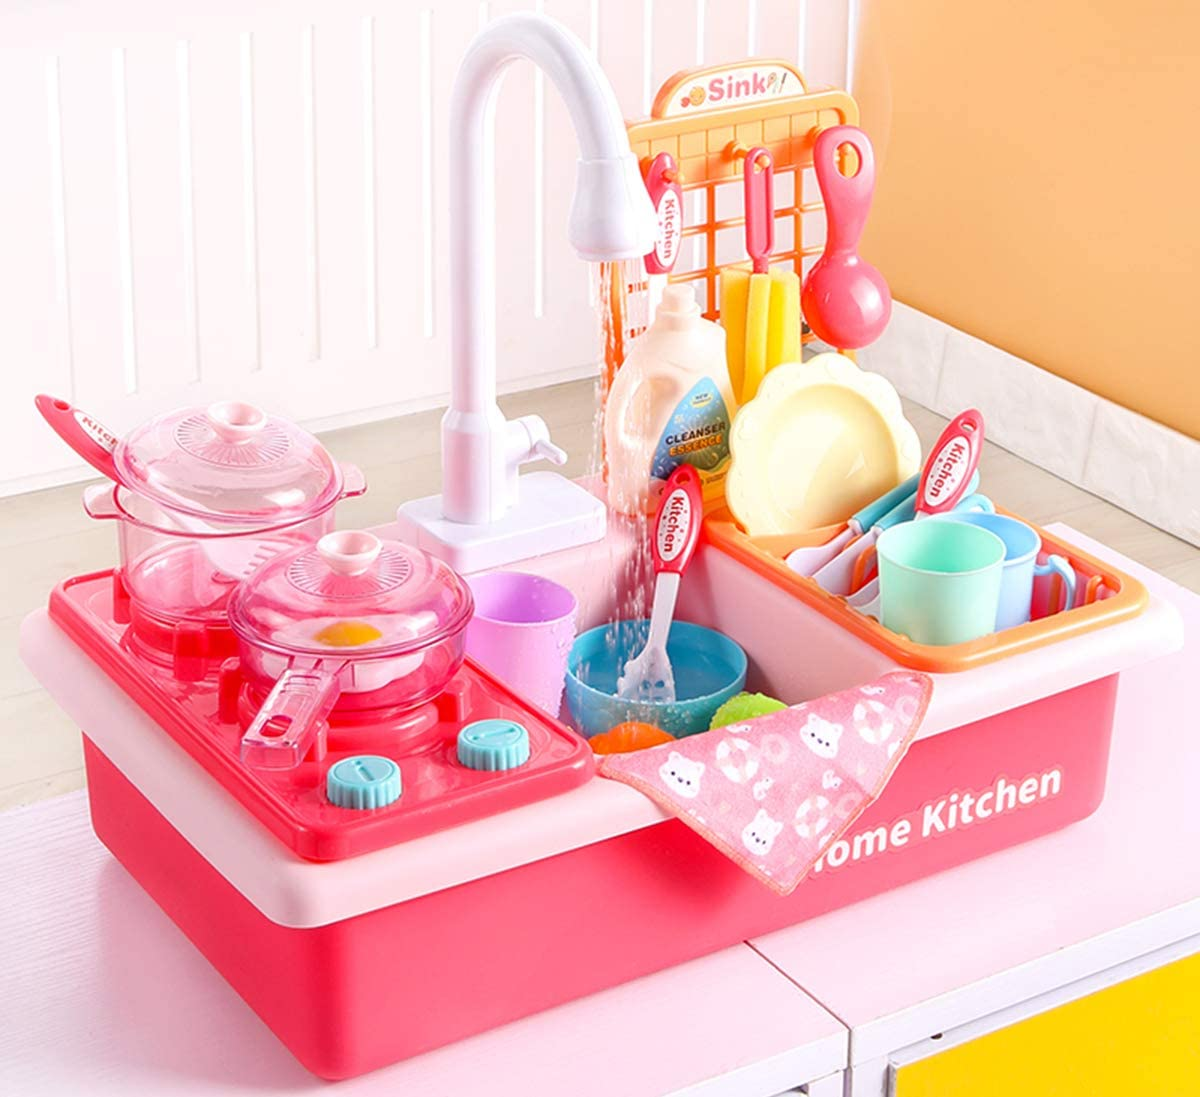 Play Kitchen Sink Toys with Automatic Faucets, Kids Kitchen Set Dishwasher with Cooking Stove, Tableware and Accessories Pretend Role Play Toys for Toddlers Boys Girls Aged 2 3 4 5 6(Pink)